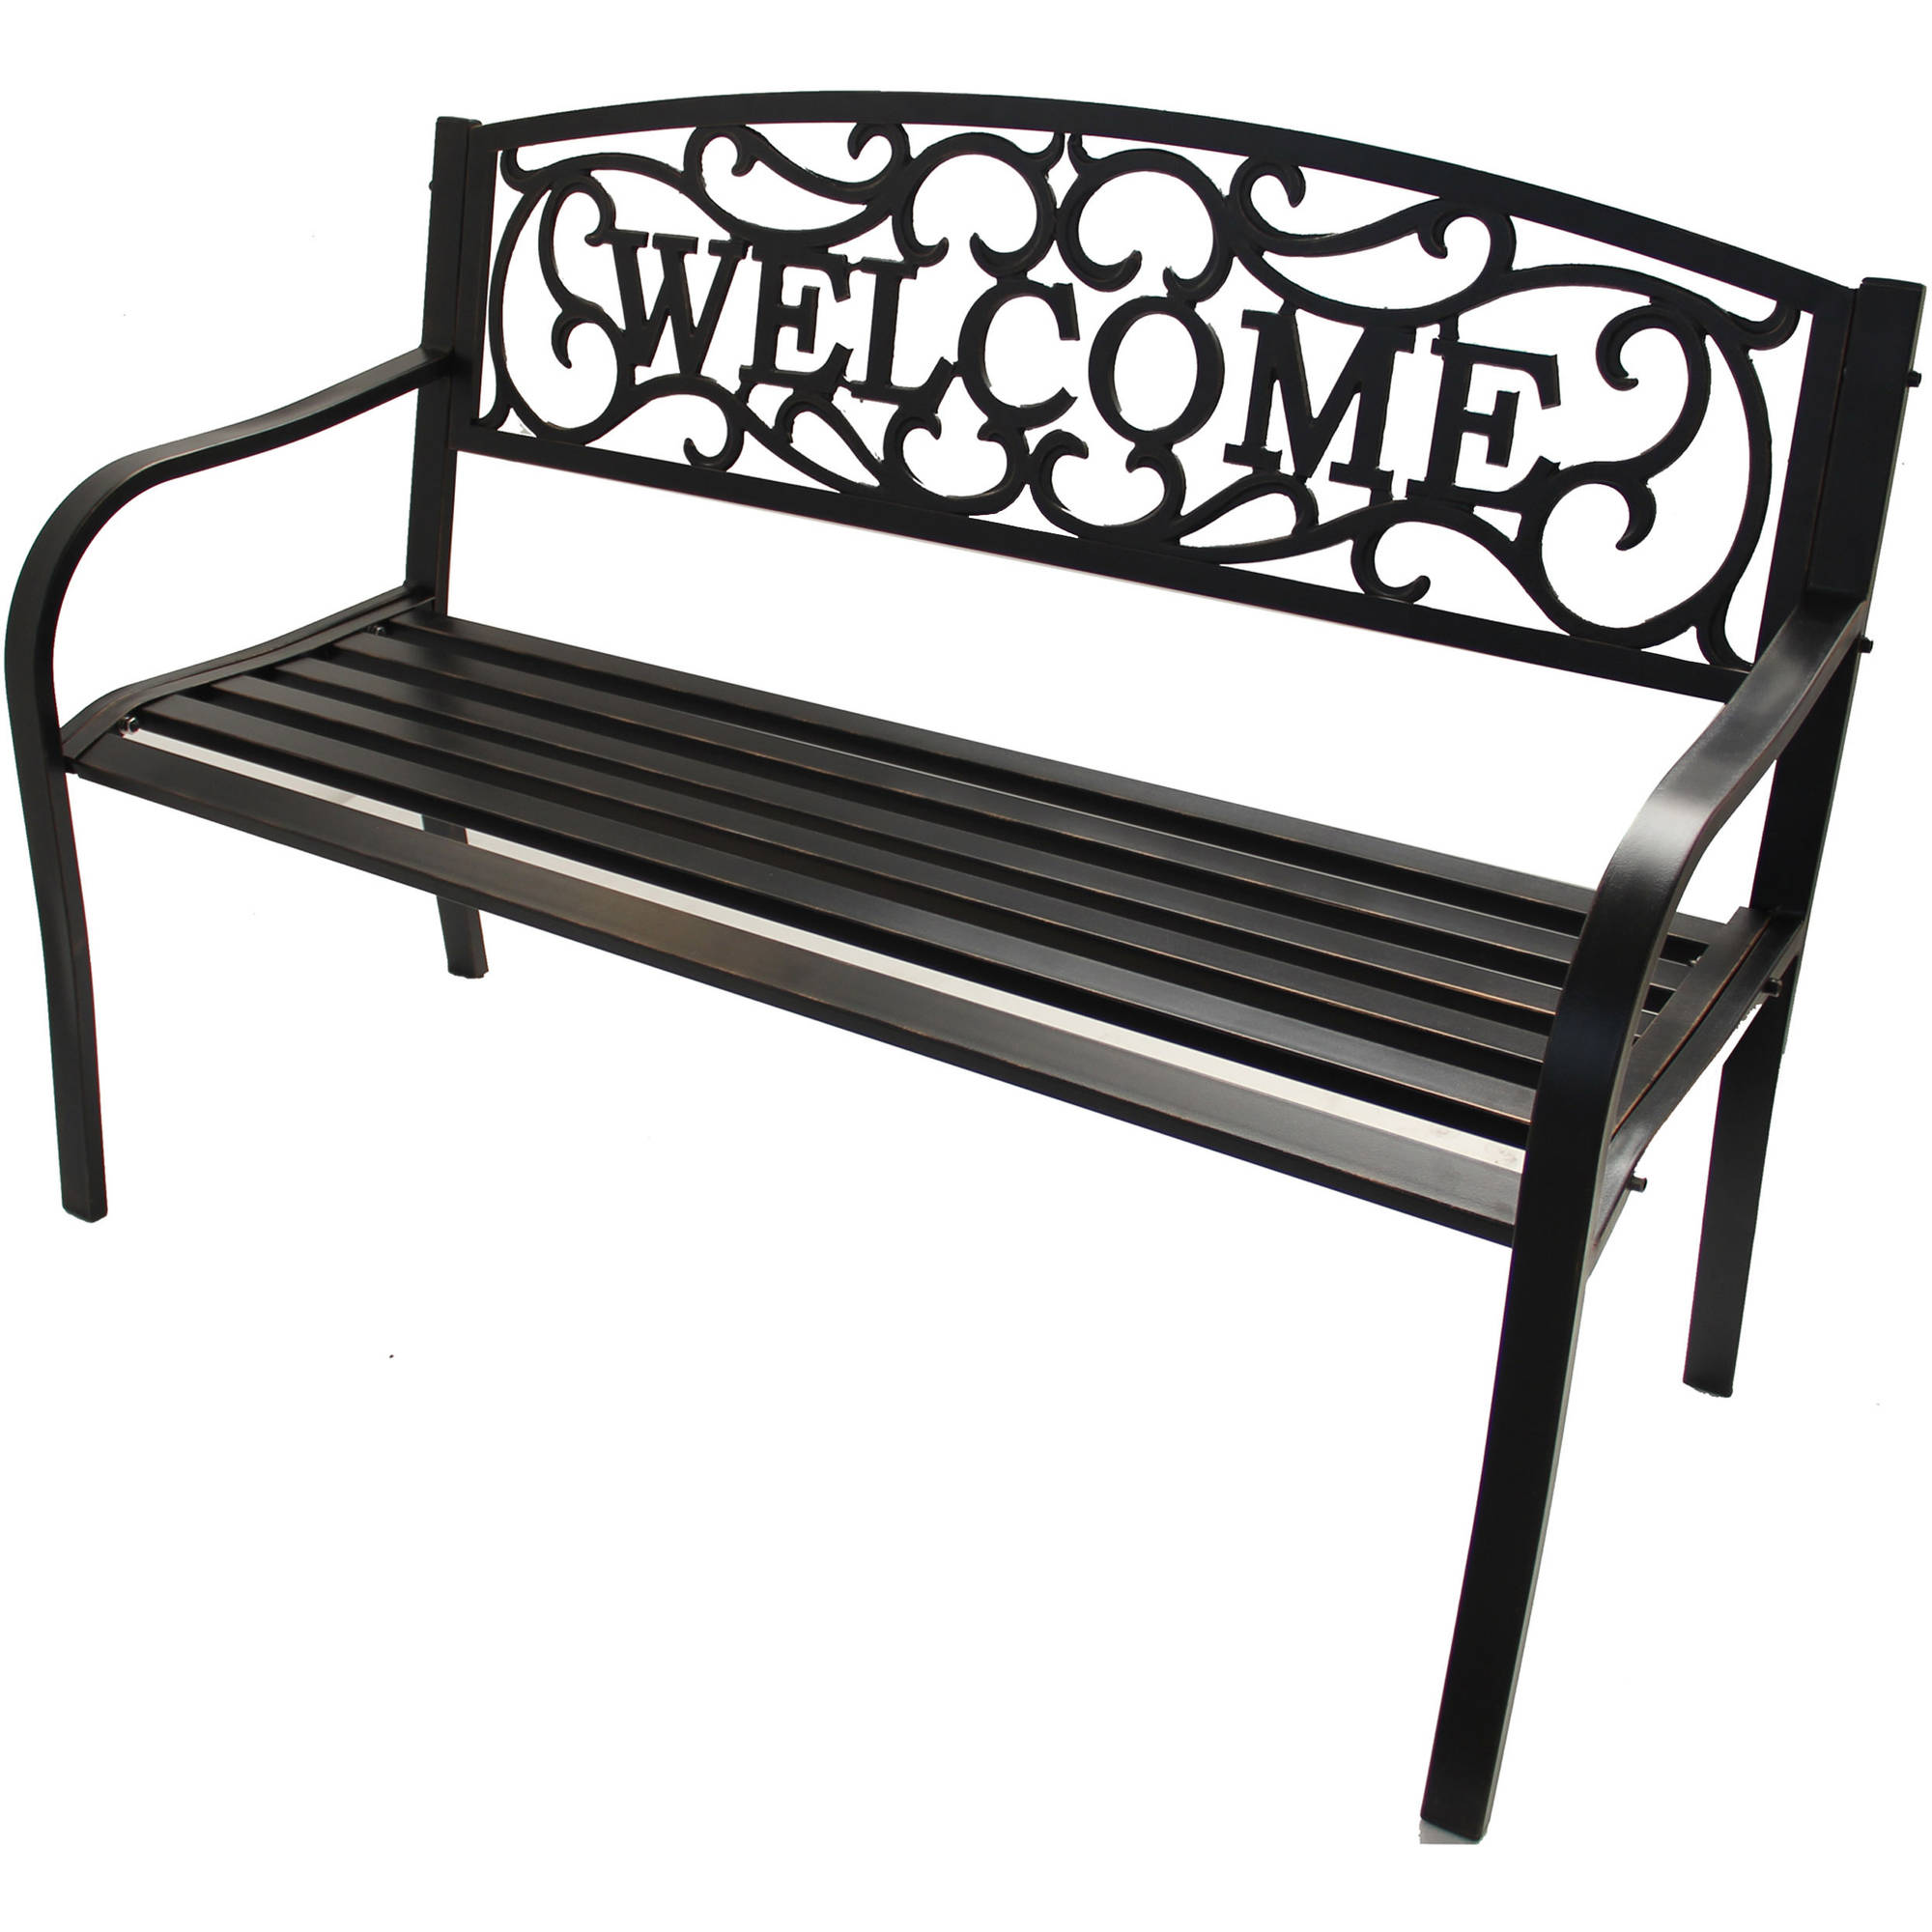 Better Homes and Gardens Outdoor Welcome Garden Bench